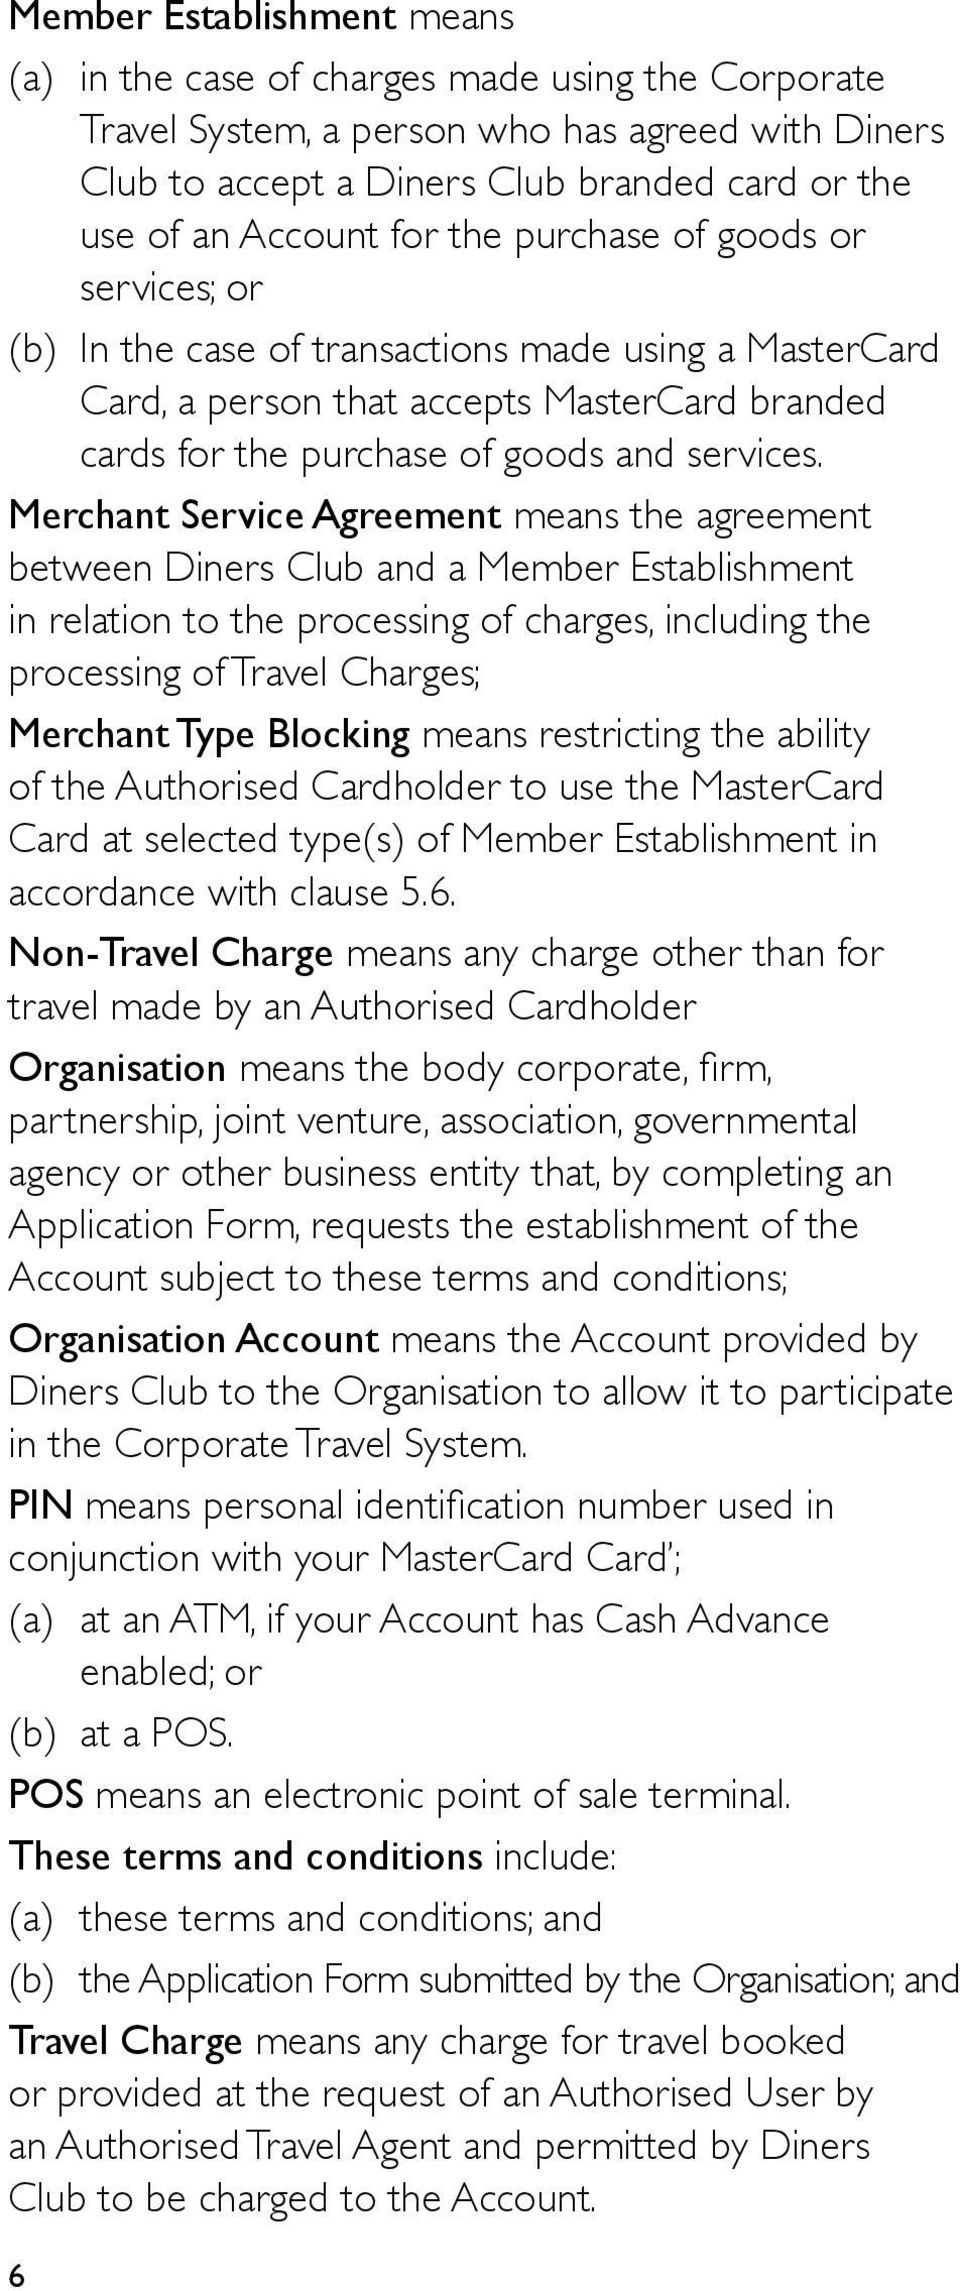 Merchant Service Agreement means the agreement between Diners Club and a Member Establishment in relation to the processing of charges, including the processing of Travel Charges; Merchant Type